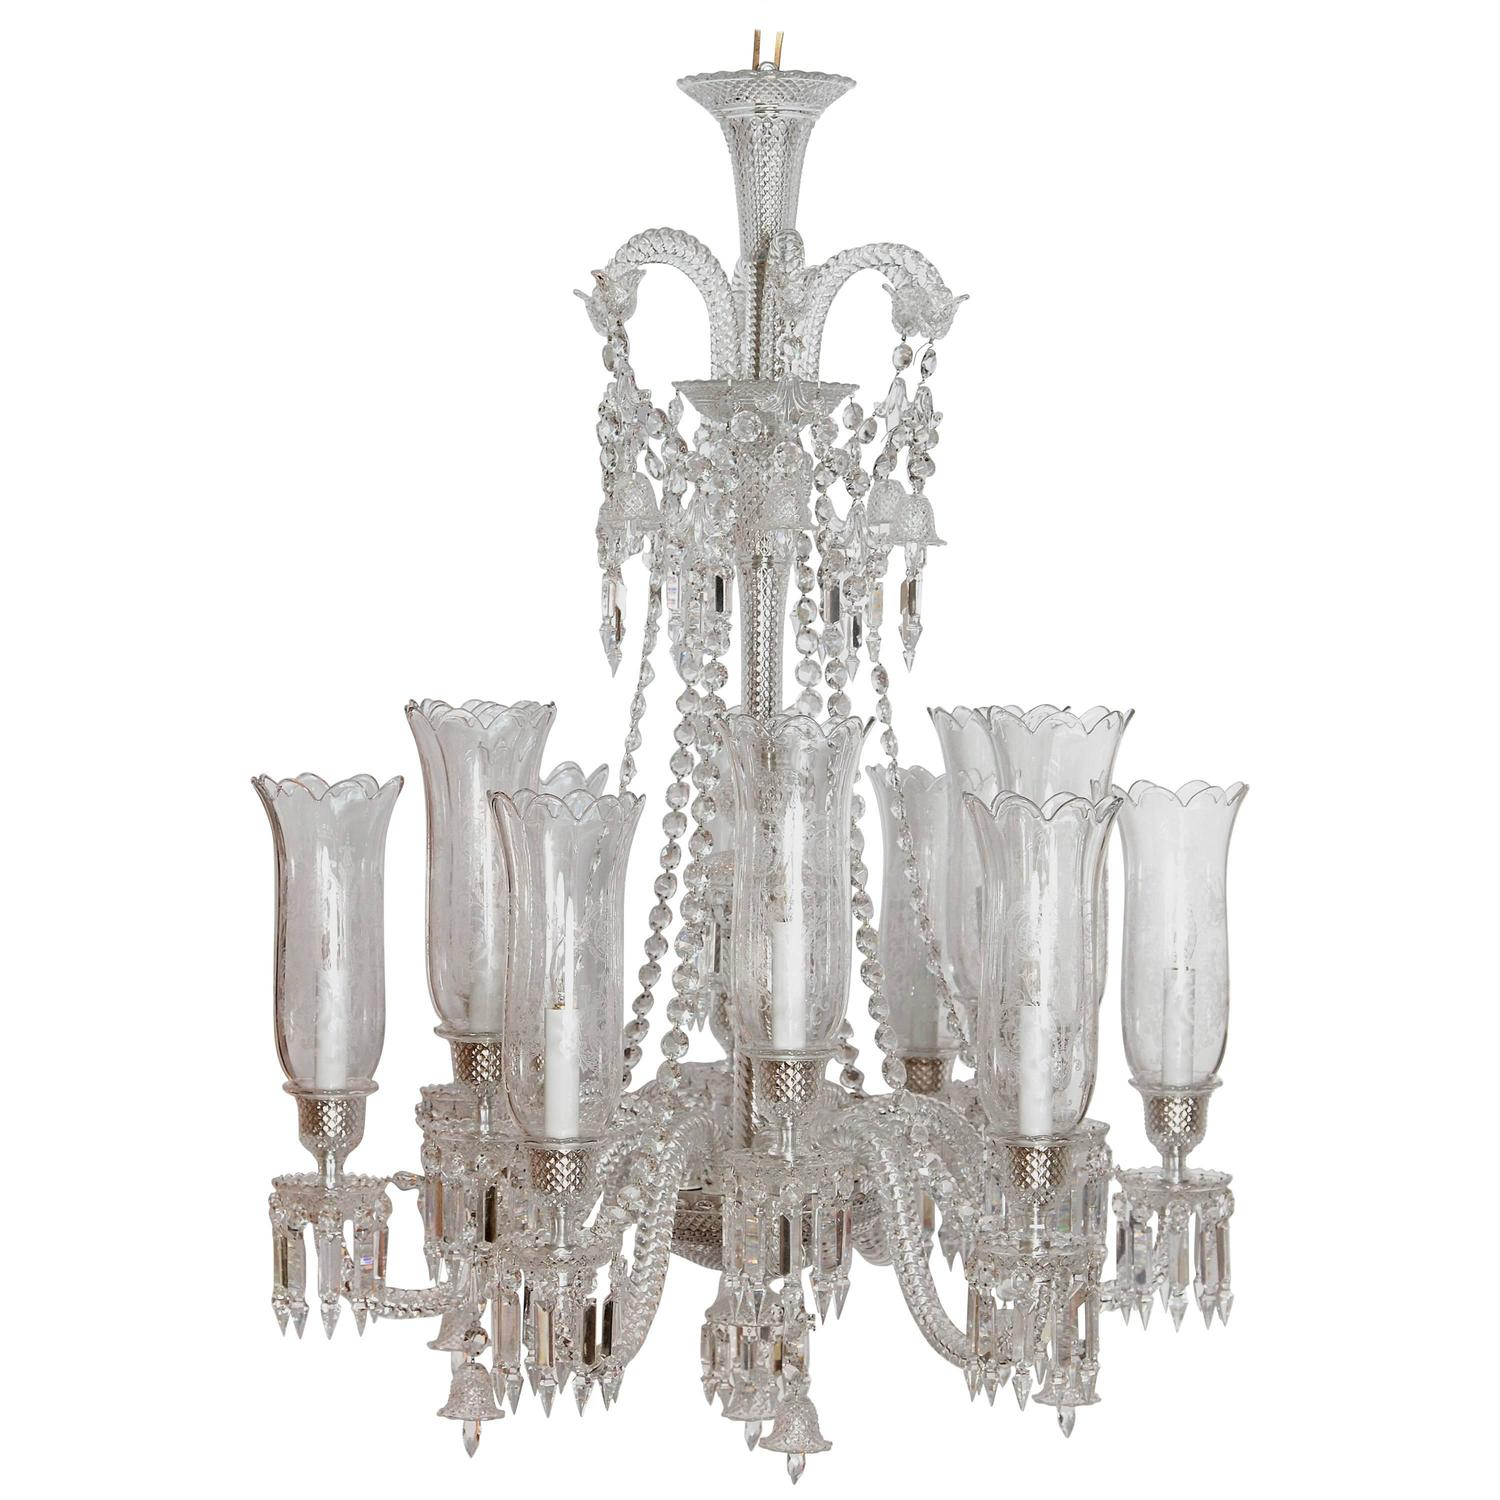 Philippe starck for baccarat zenith long twelve light chandelier philippe starck for baccarat zenith long twelve light chandelier at 1stdibs arubaitofo Images